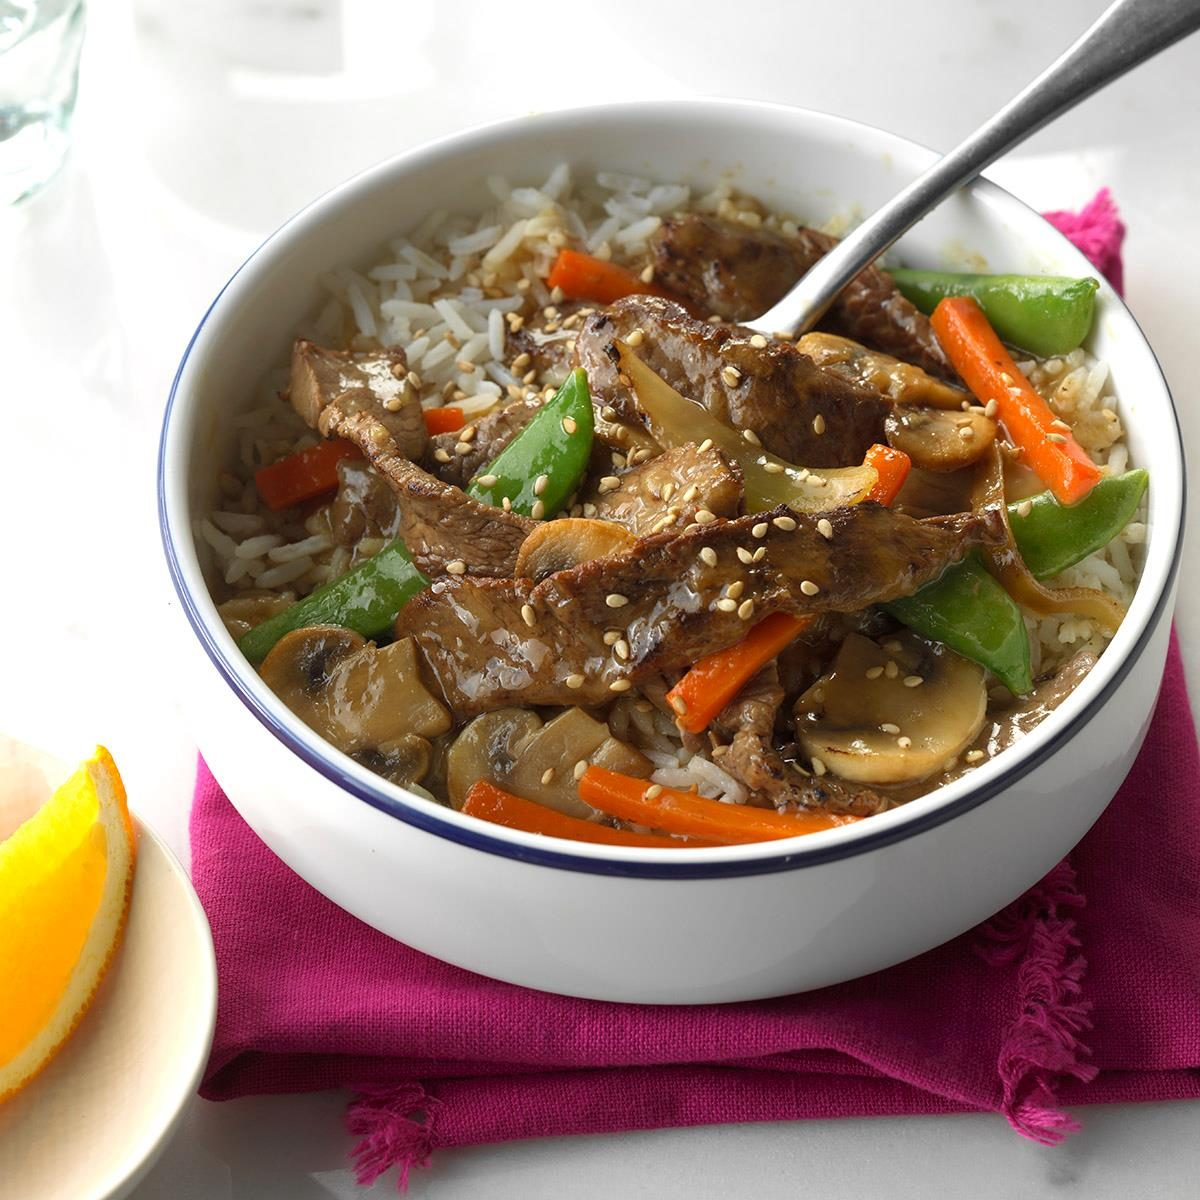 Day 6 Lunch: Beef Orange Stir Fry